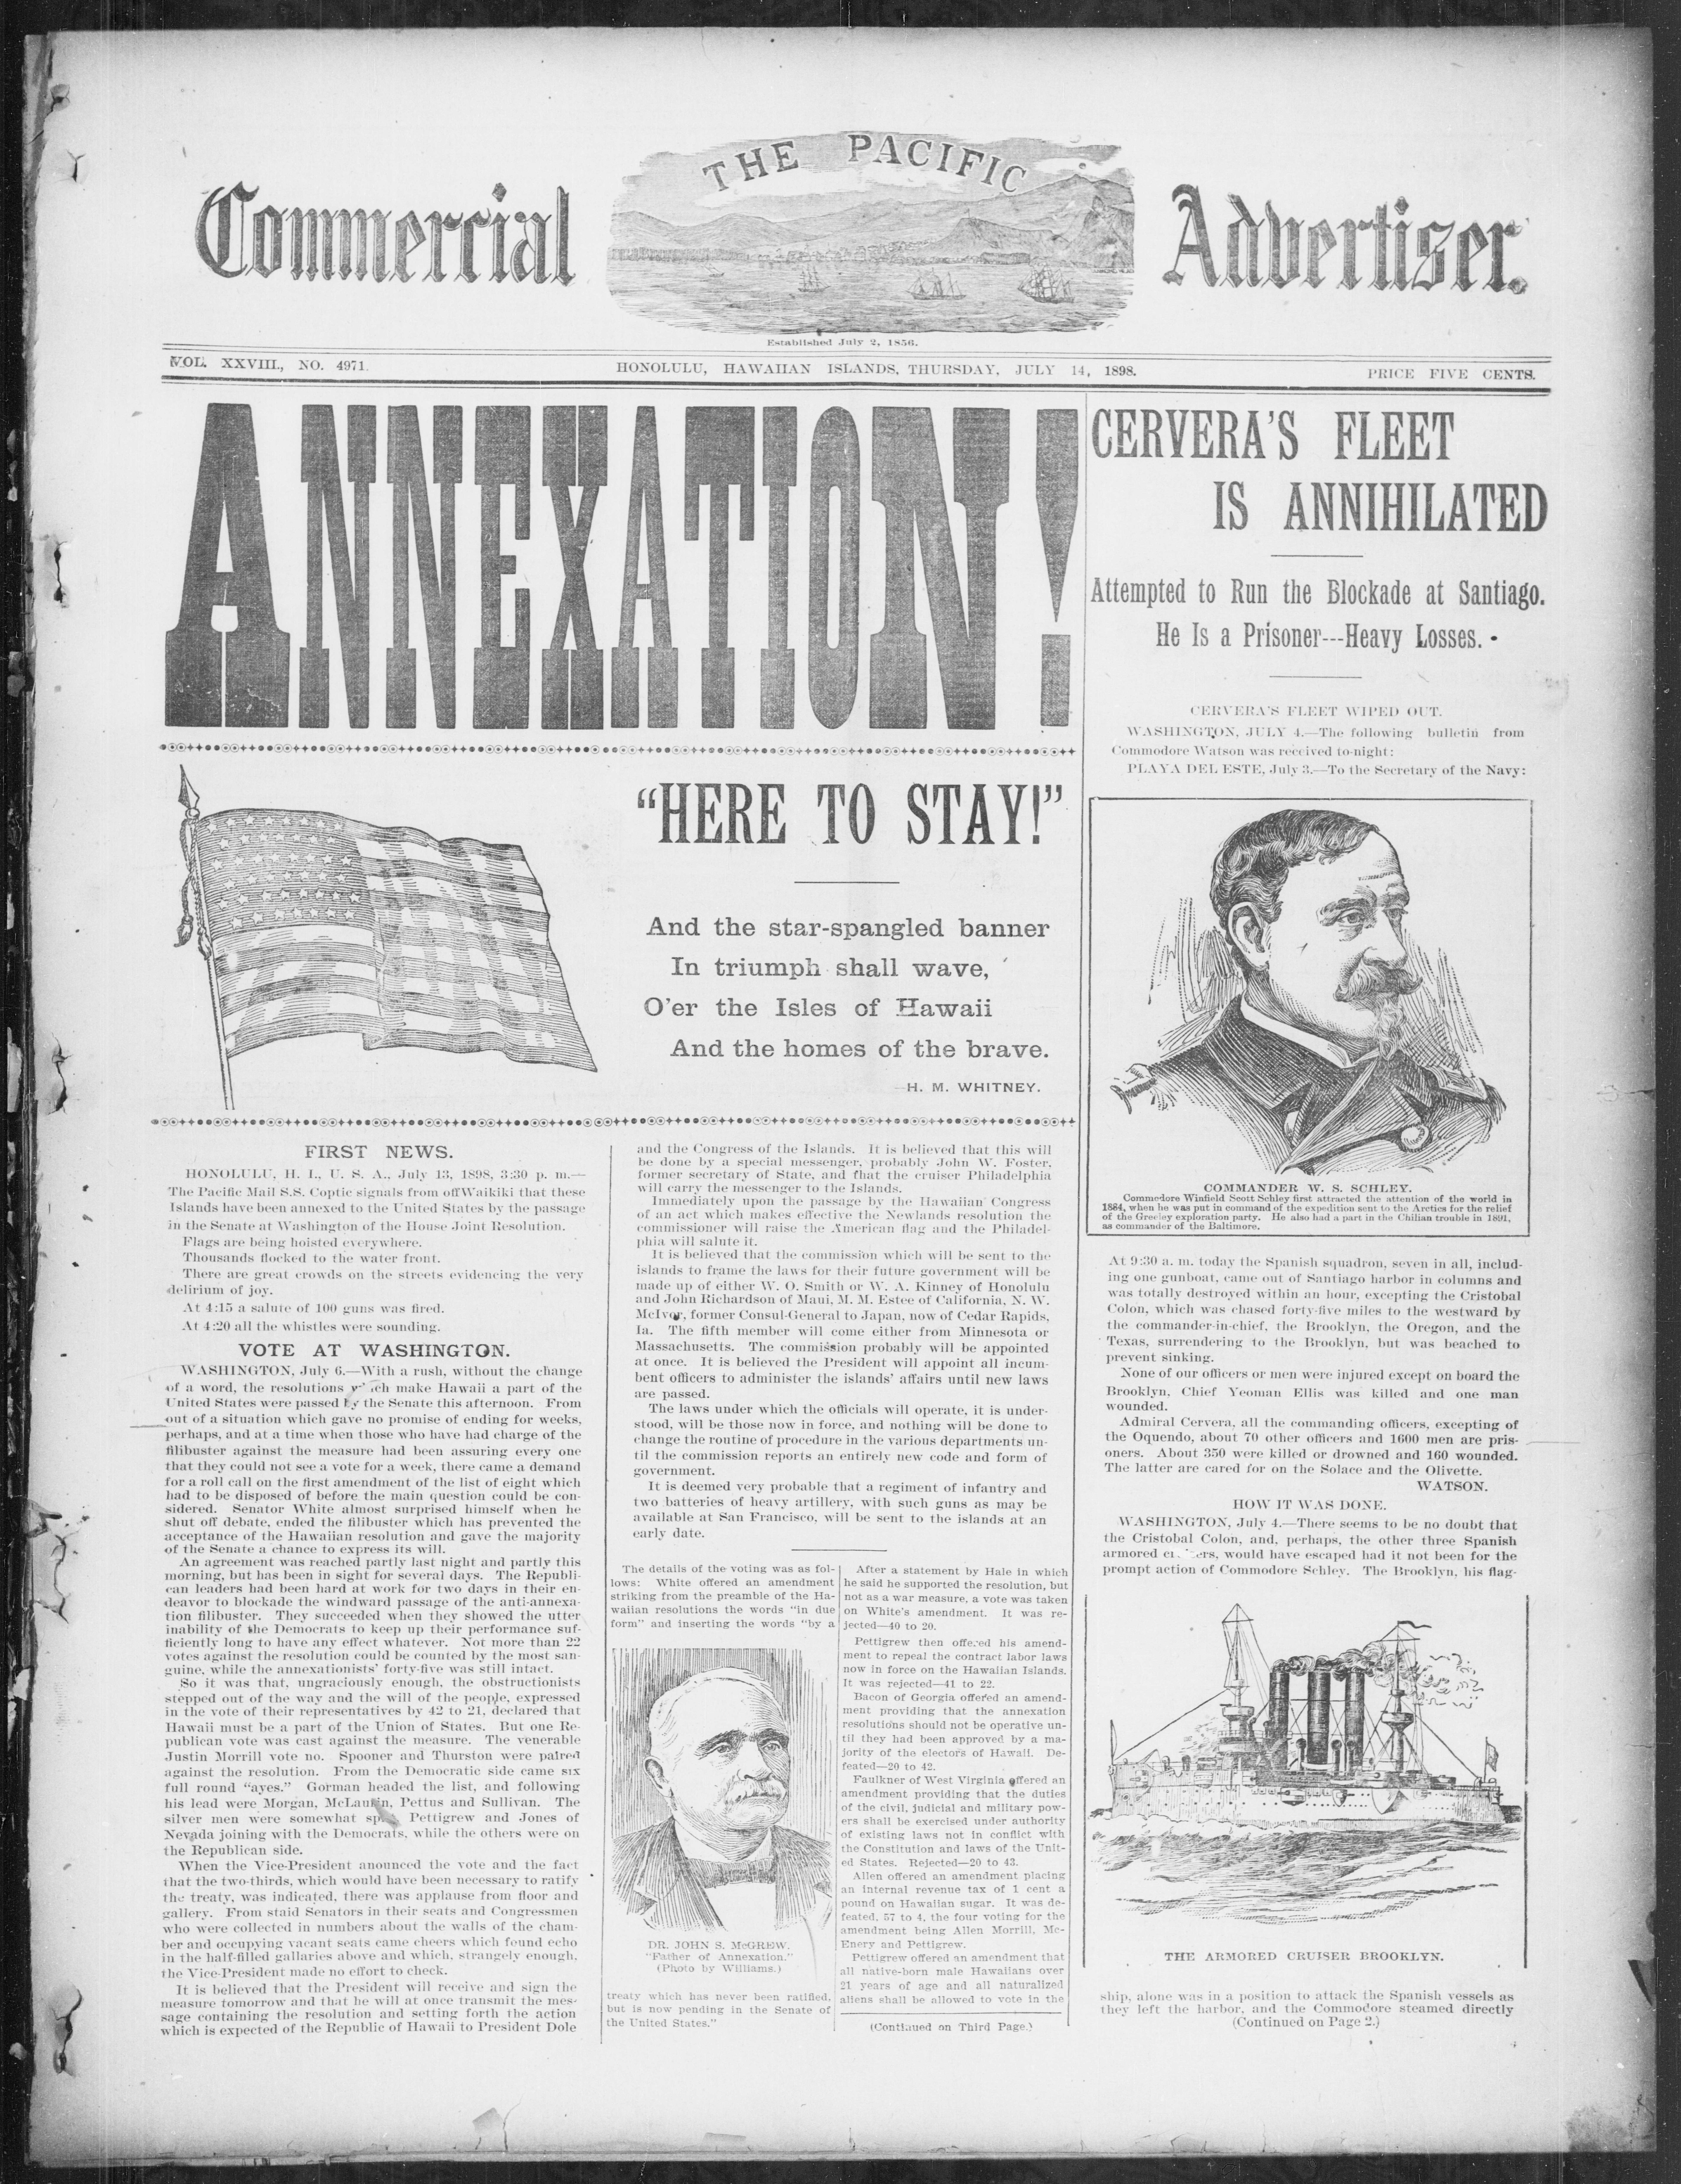 Annexation announcement in the Pacific Commerical Advertiser, July 14, 1898.